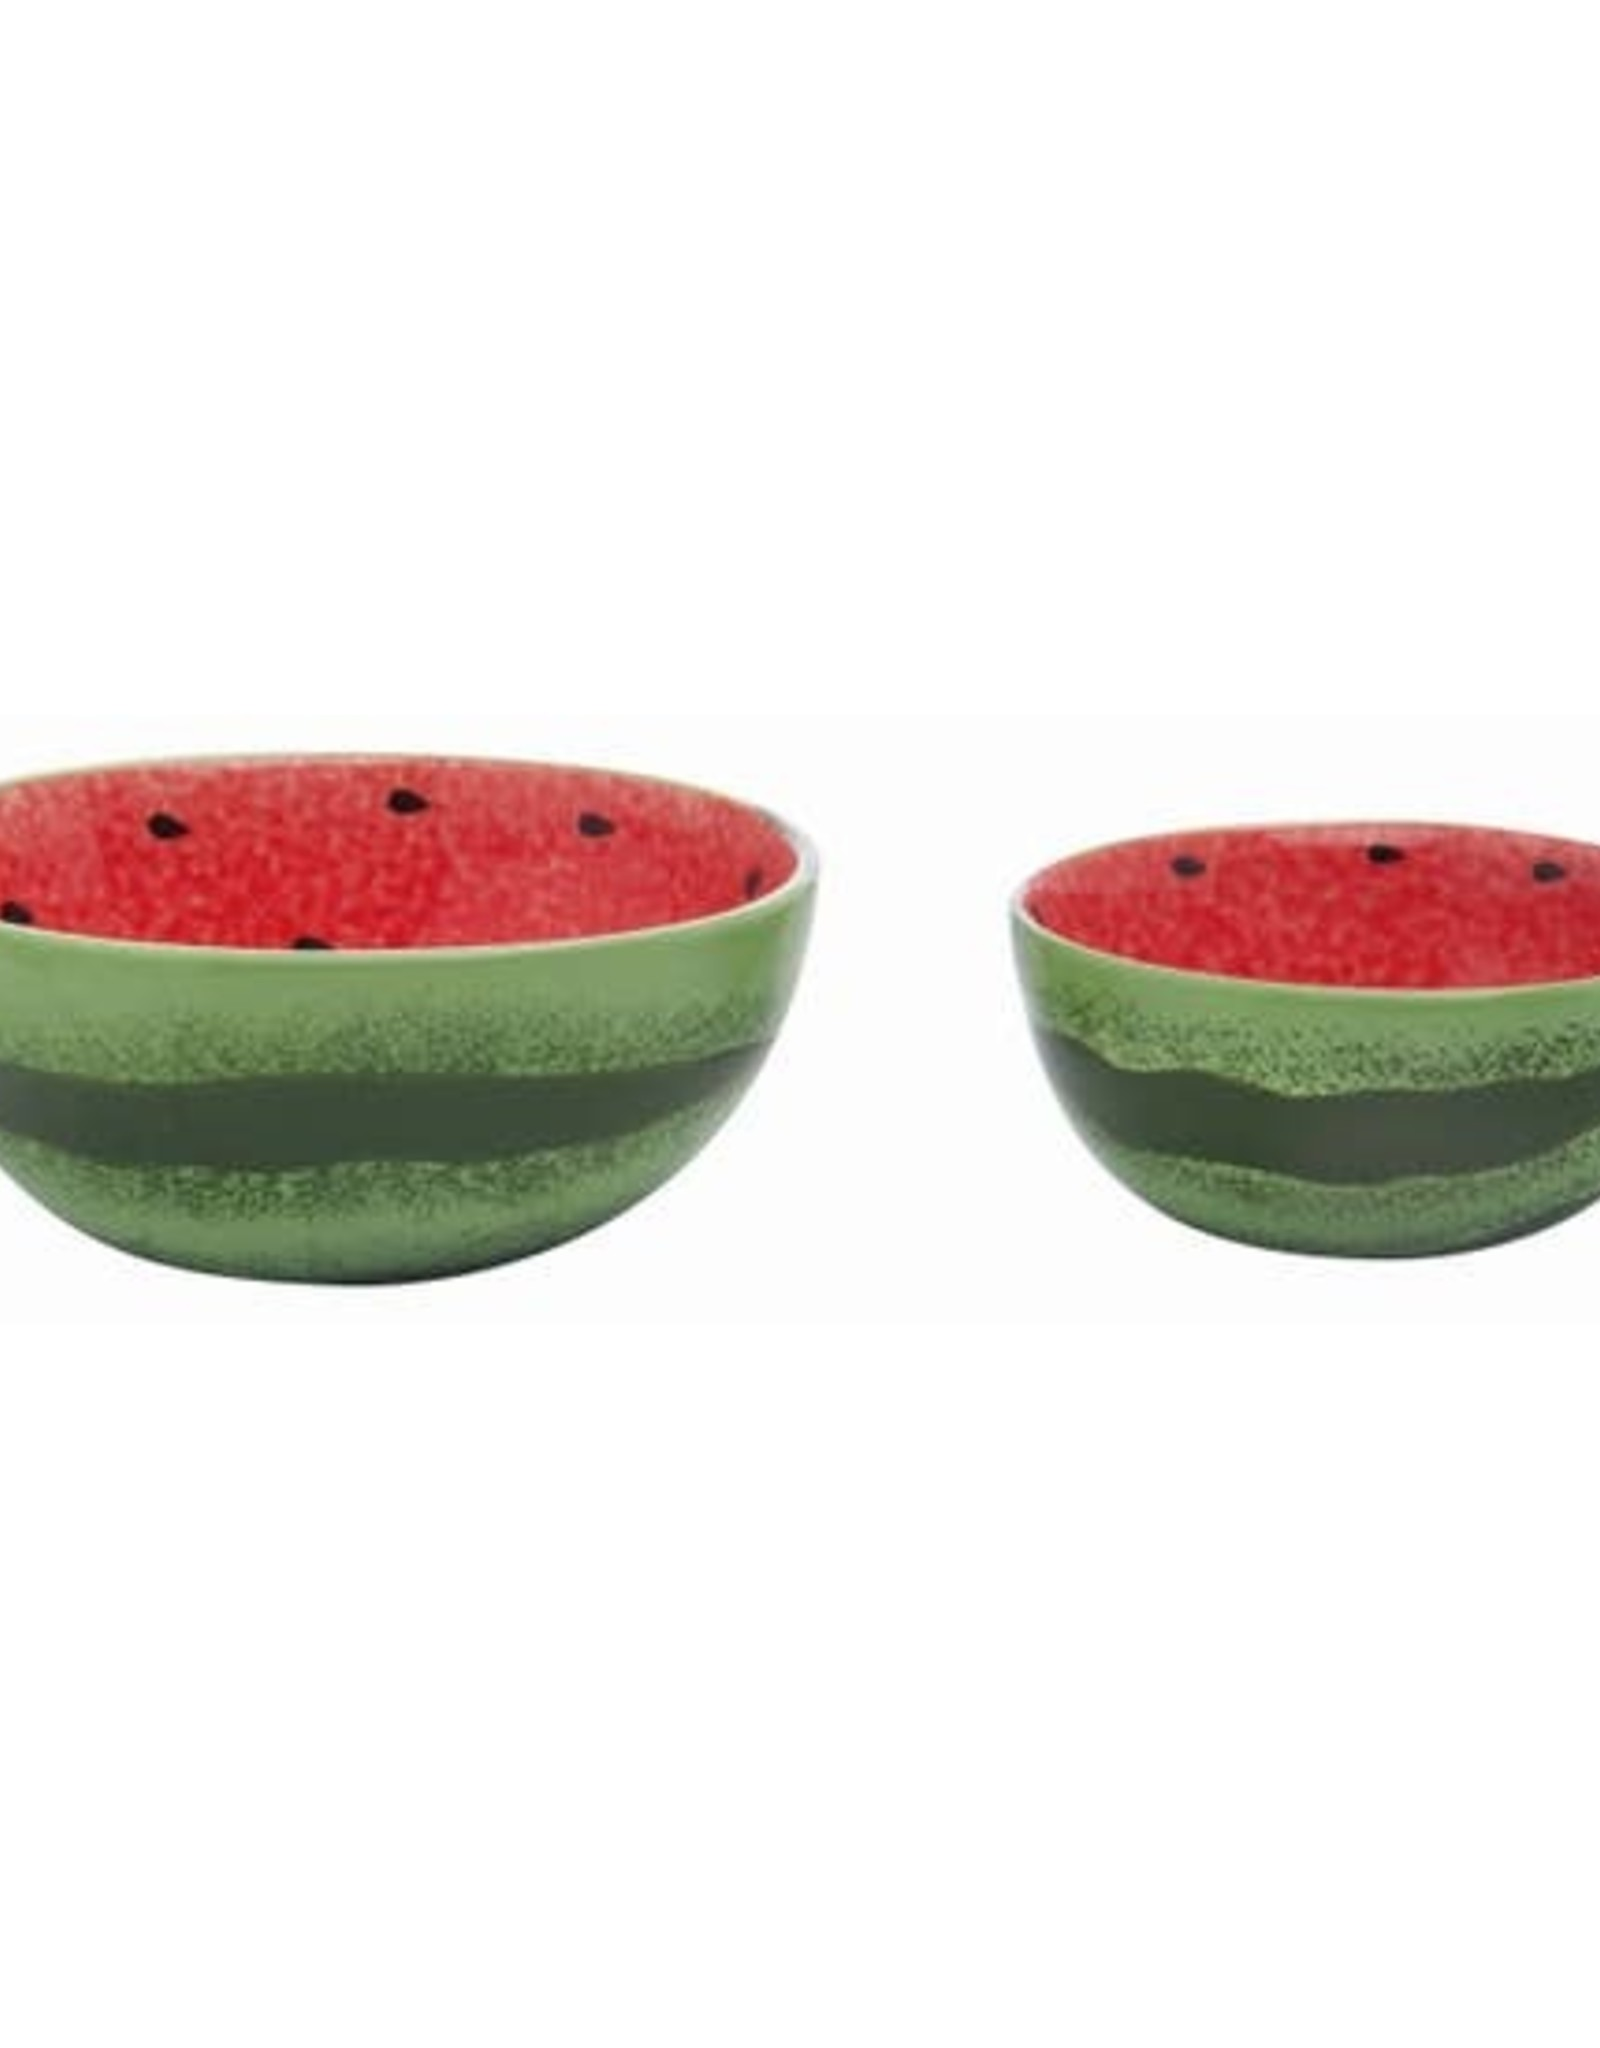 Wink Watermelon Nested Bowls - Set of 2